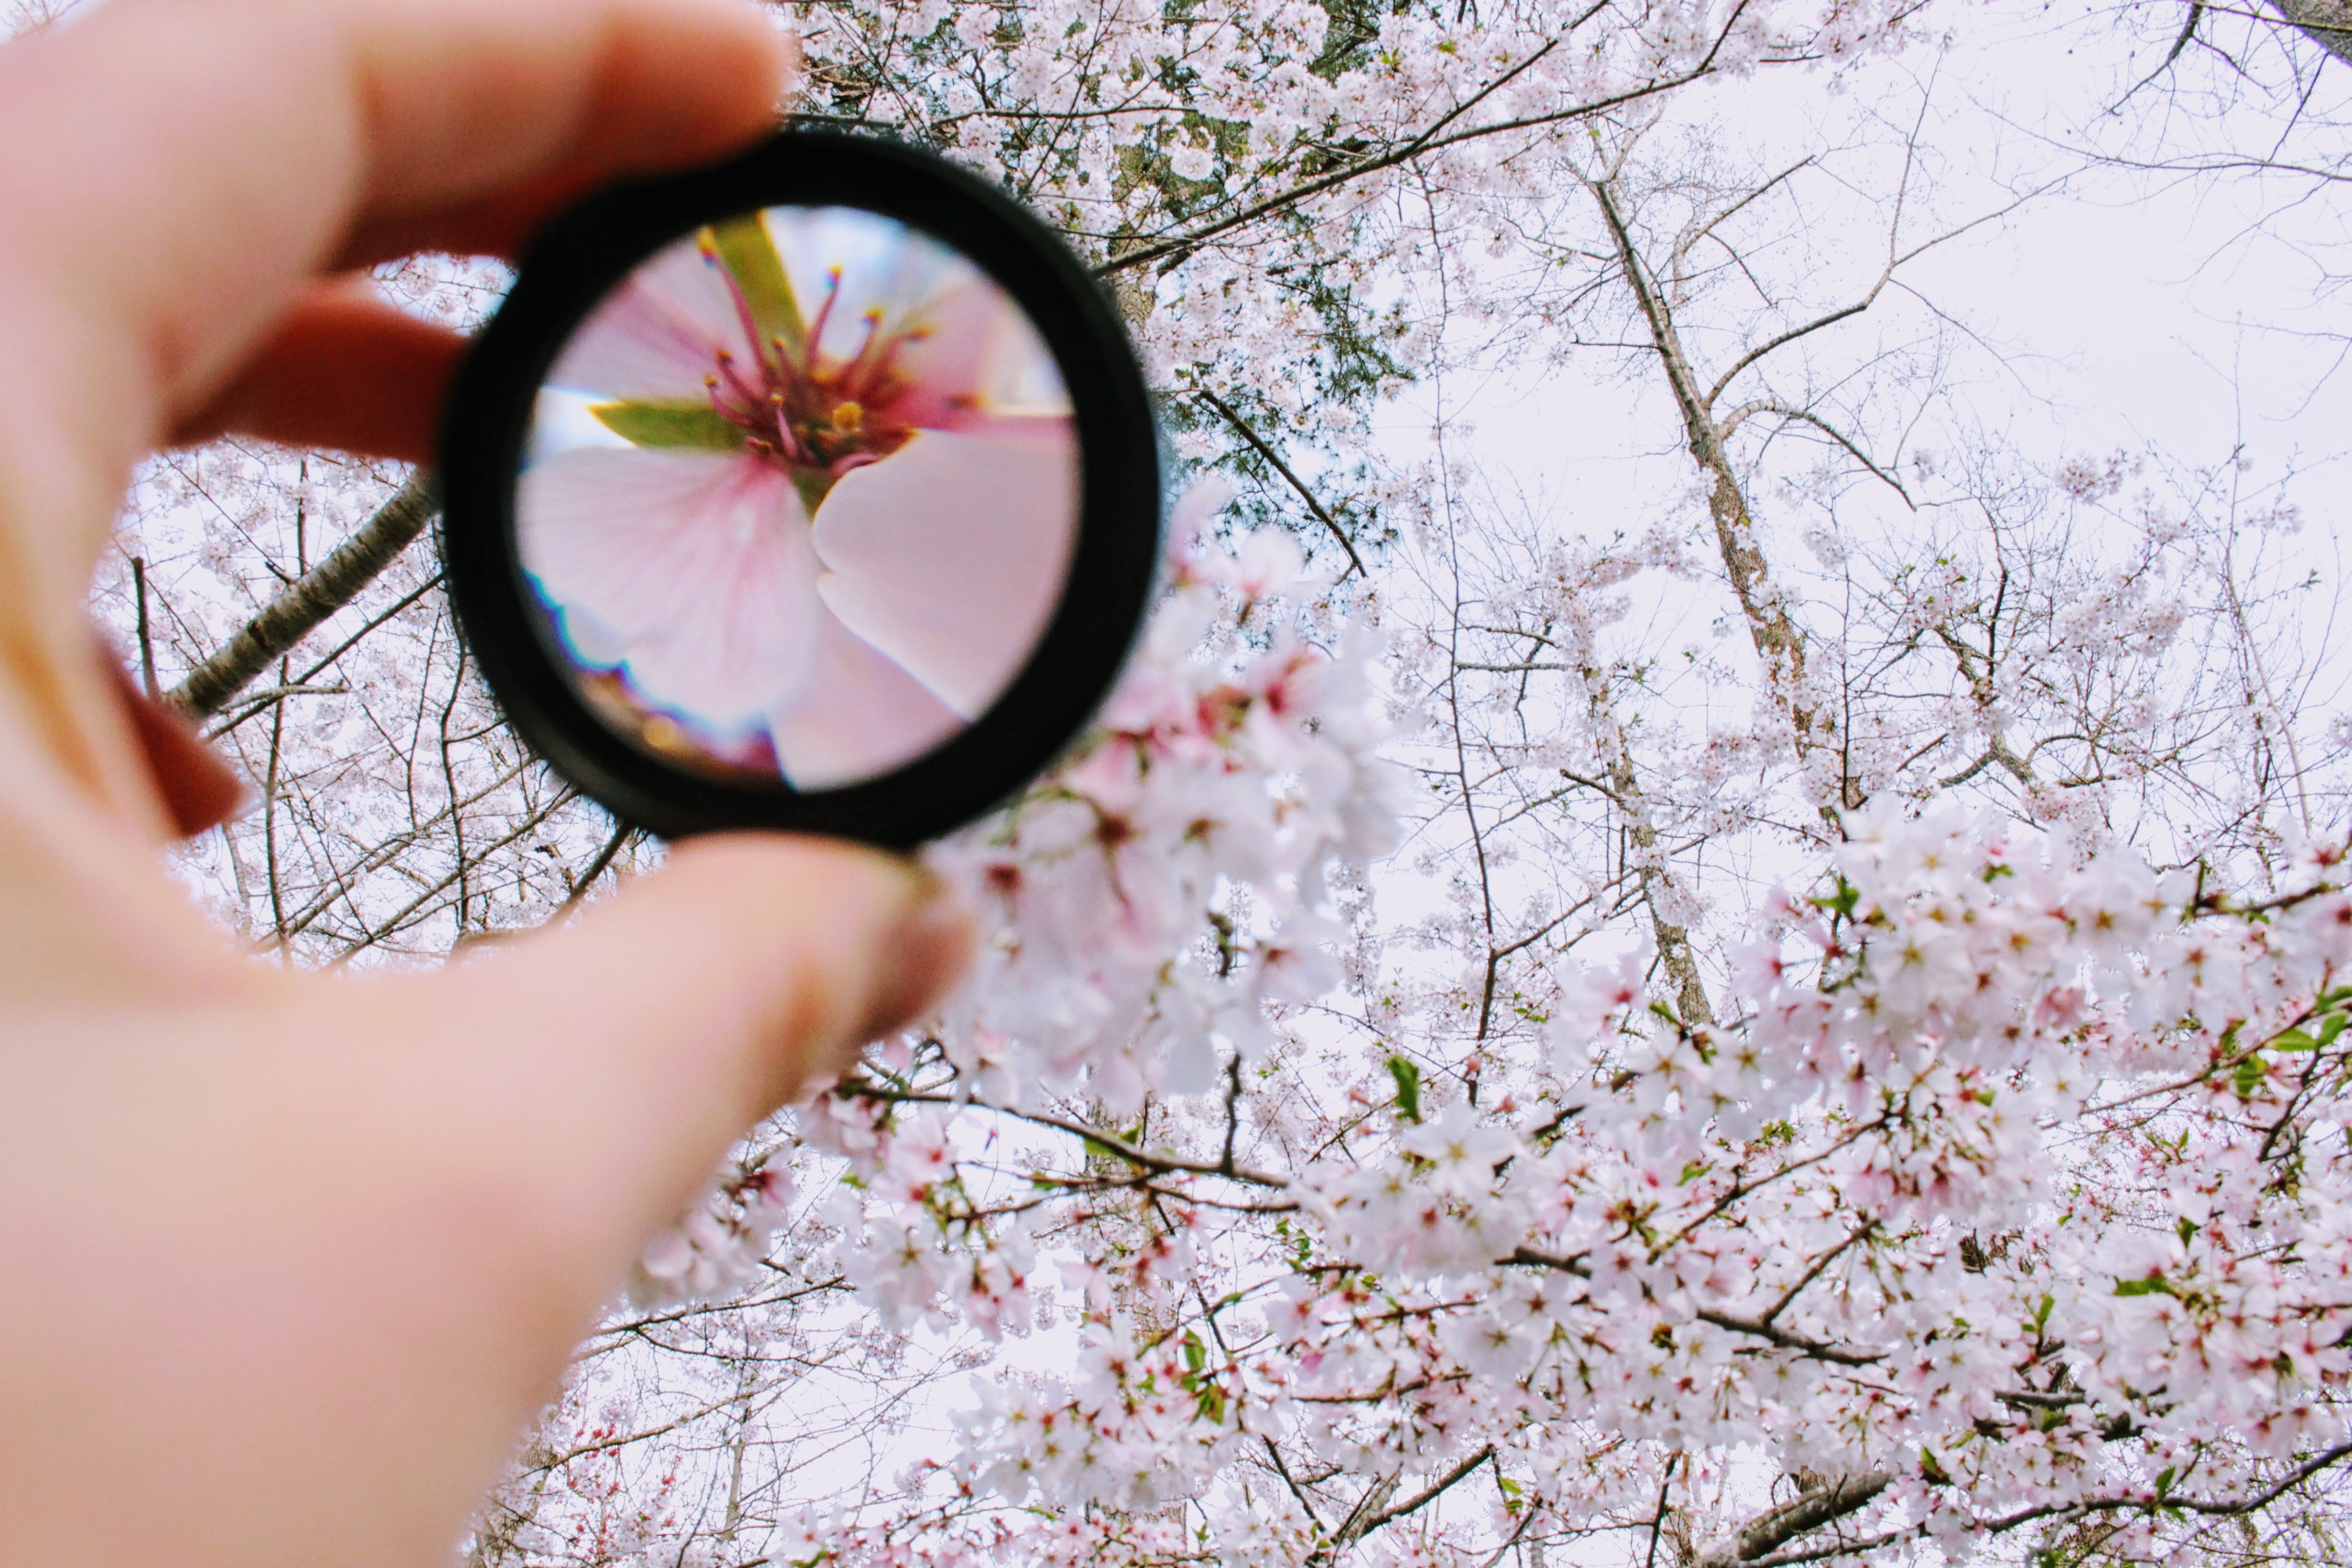 Person Holding Round Framed Mirror Near Tree at Daytime, Garden, Tree, Petals, Person, HQ Photo